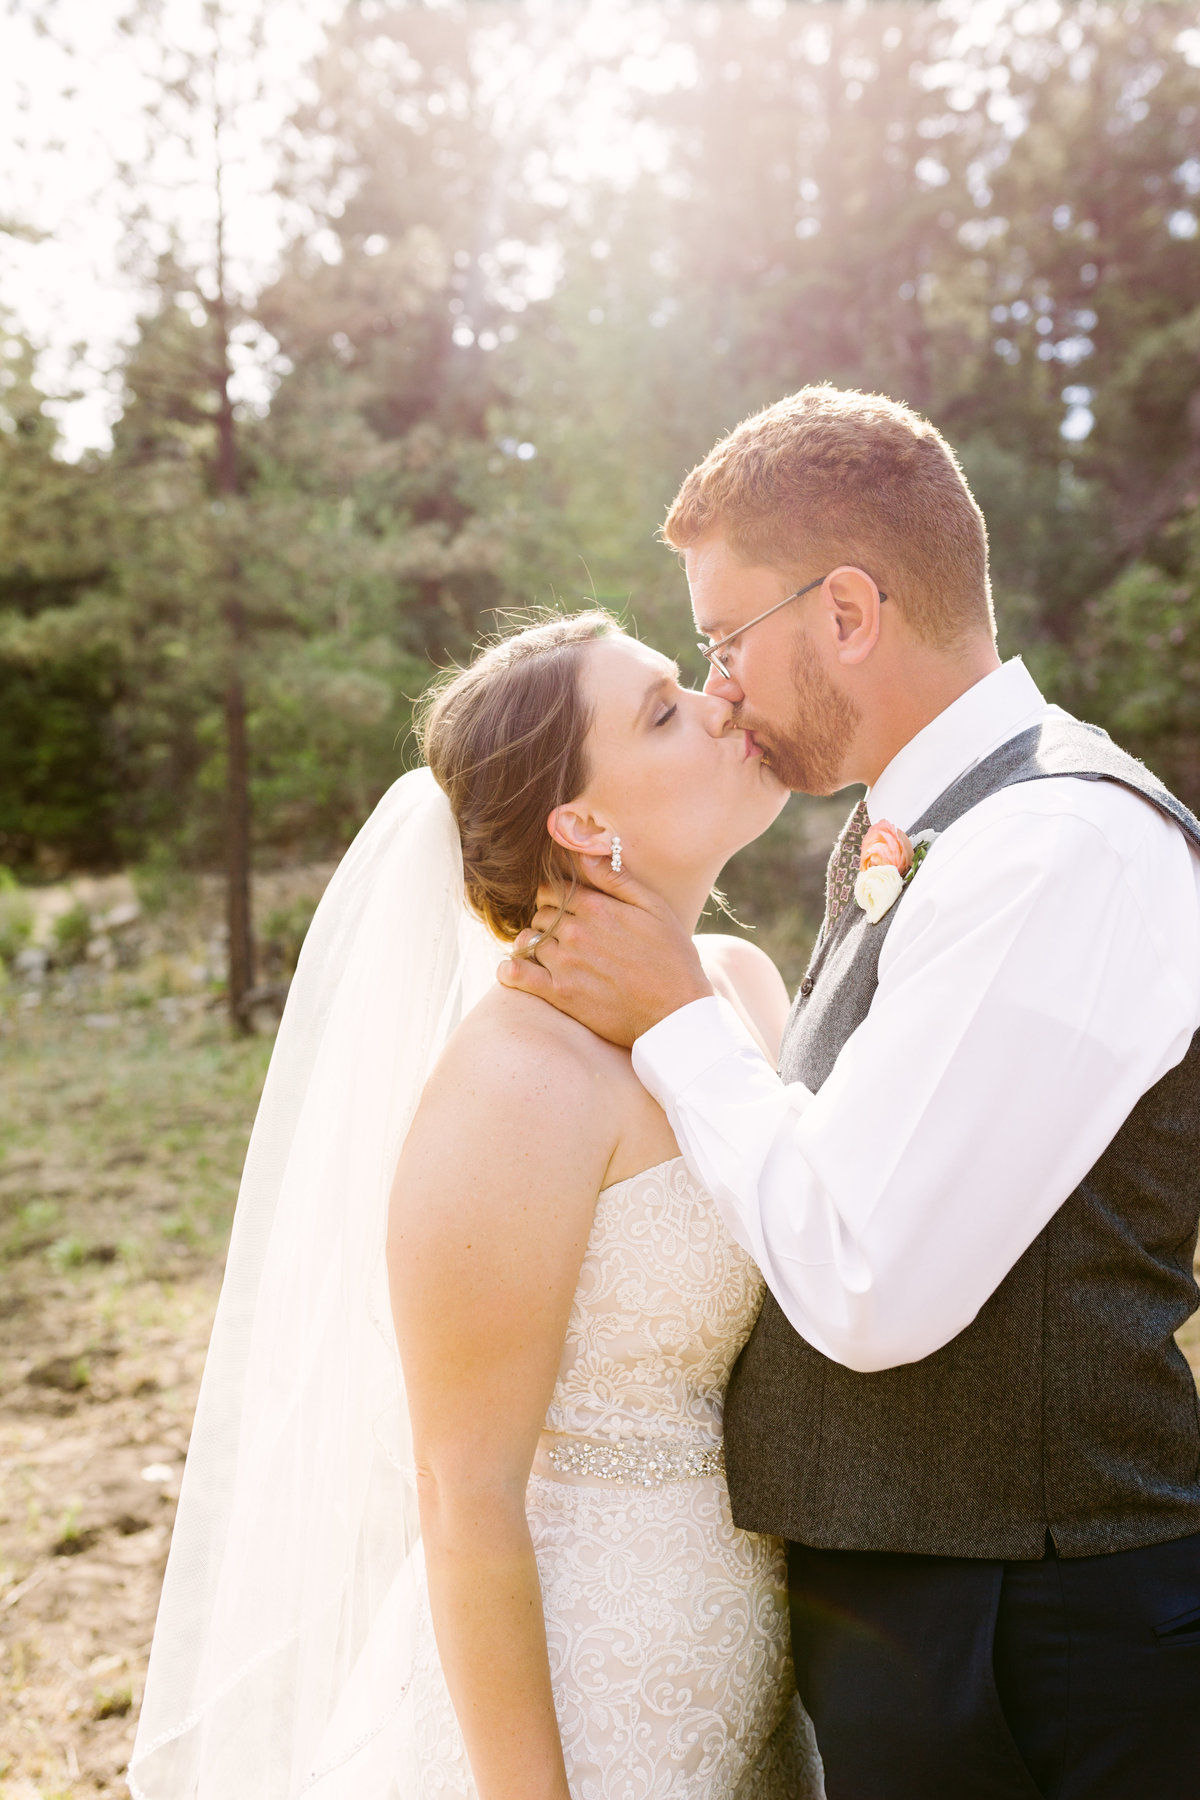 Albuquerque Outdoor Country Wedding Photographer_www.tylerbrooke.com_Kate Kauffman-1-27